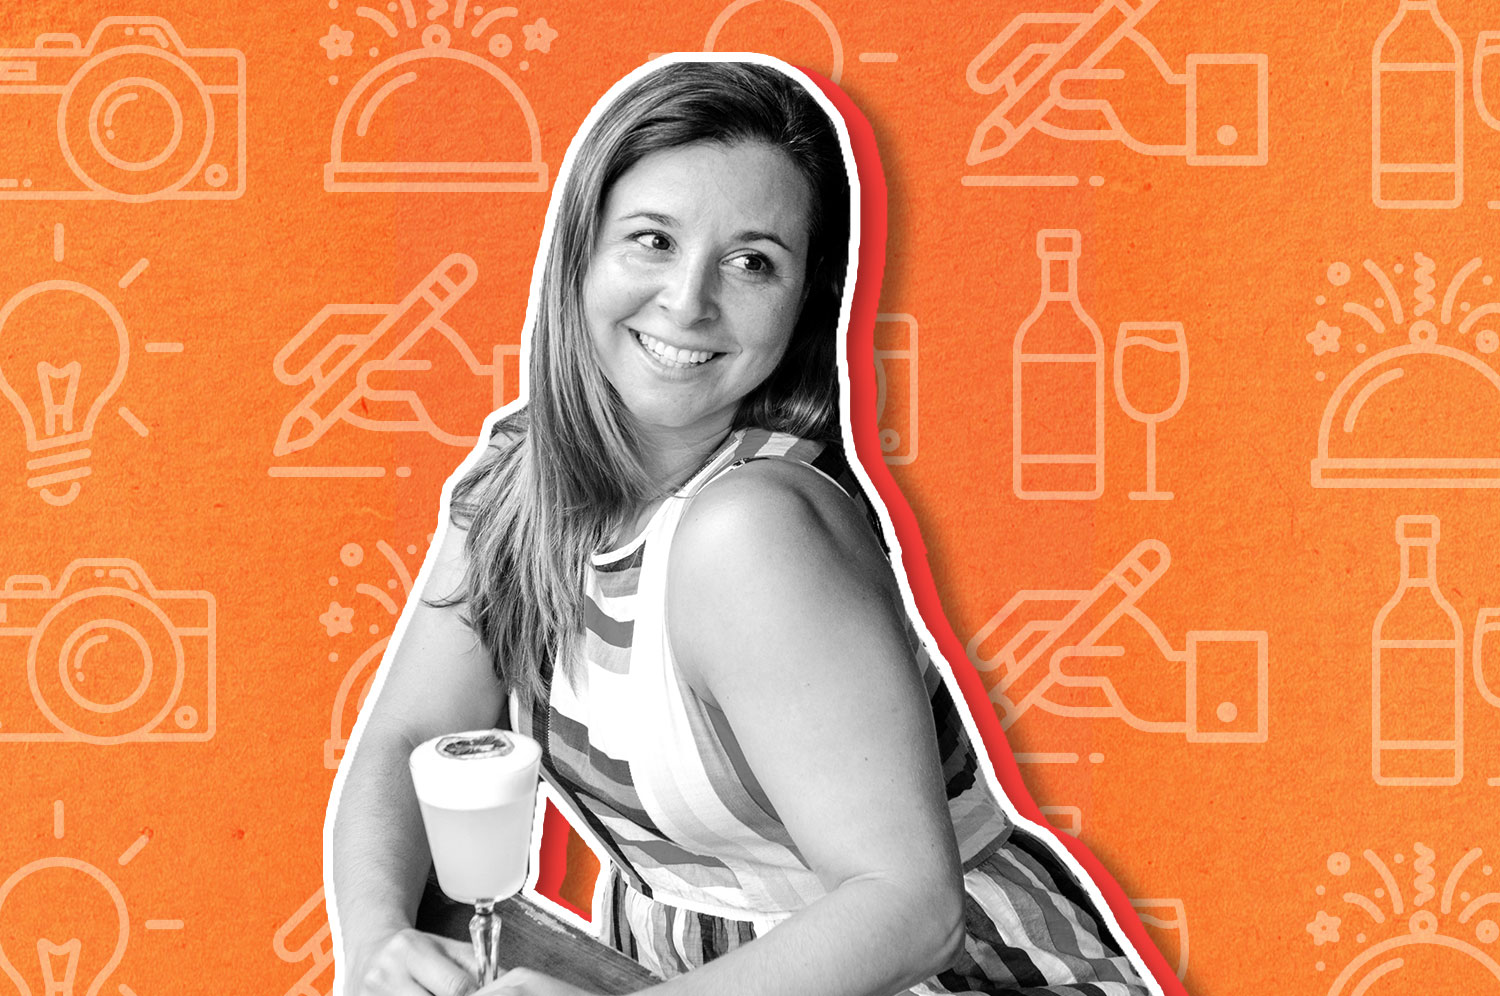 A black and white cut out photo of a white woman with blond hair and a white and striped sleeveless dress drinking a foamy cocktail on an orange background.